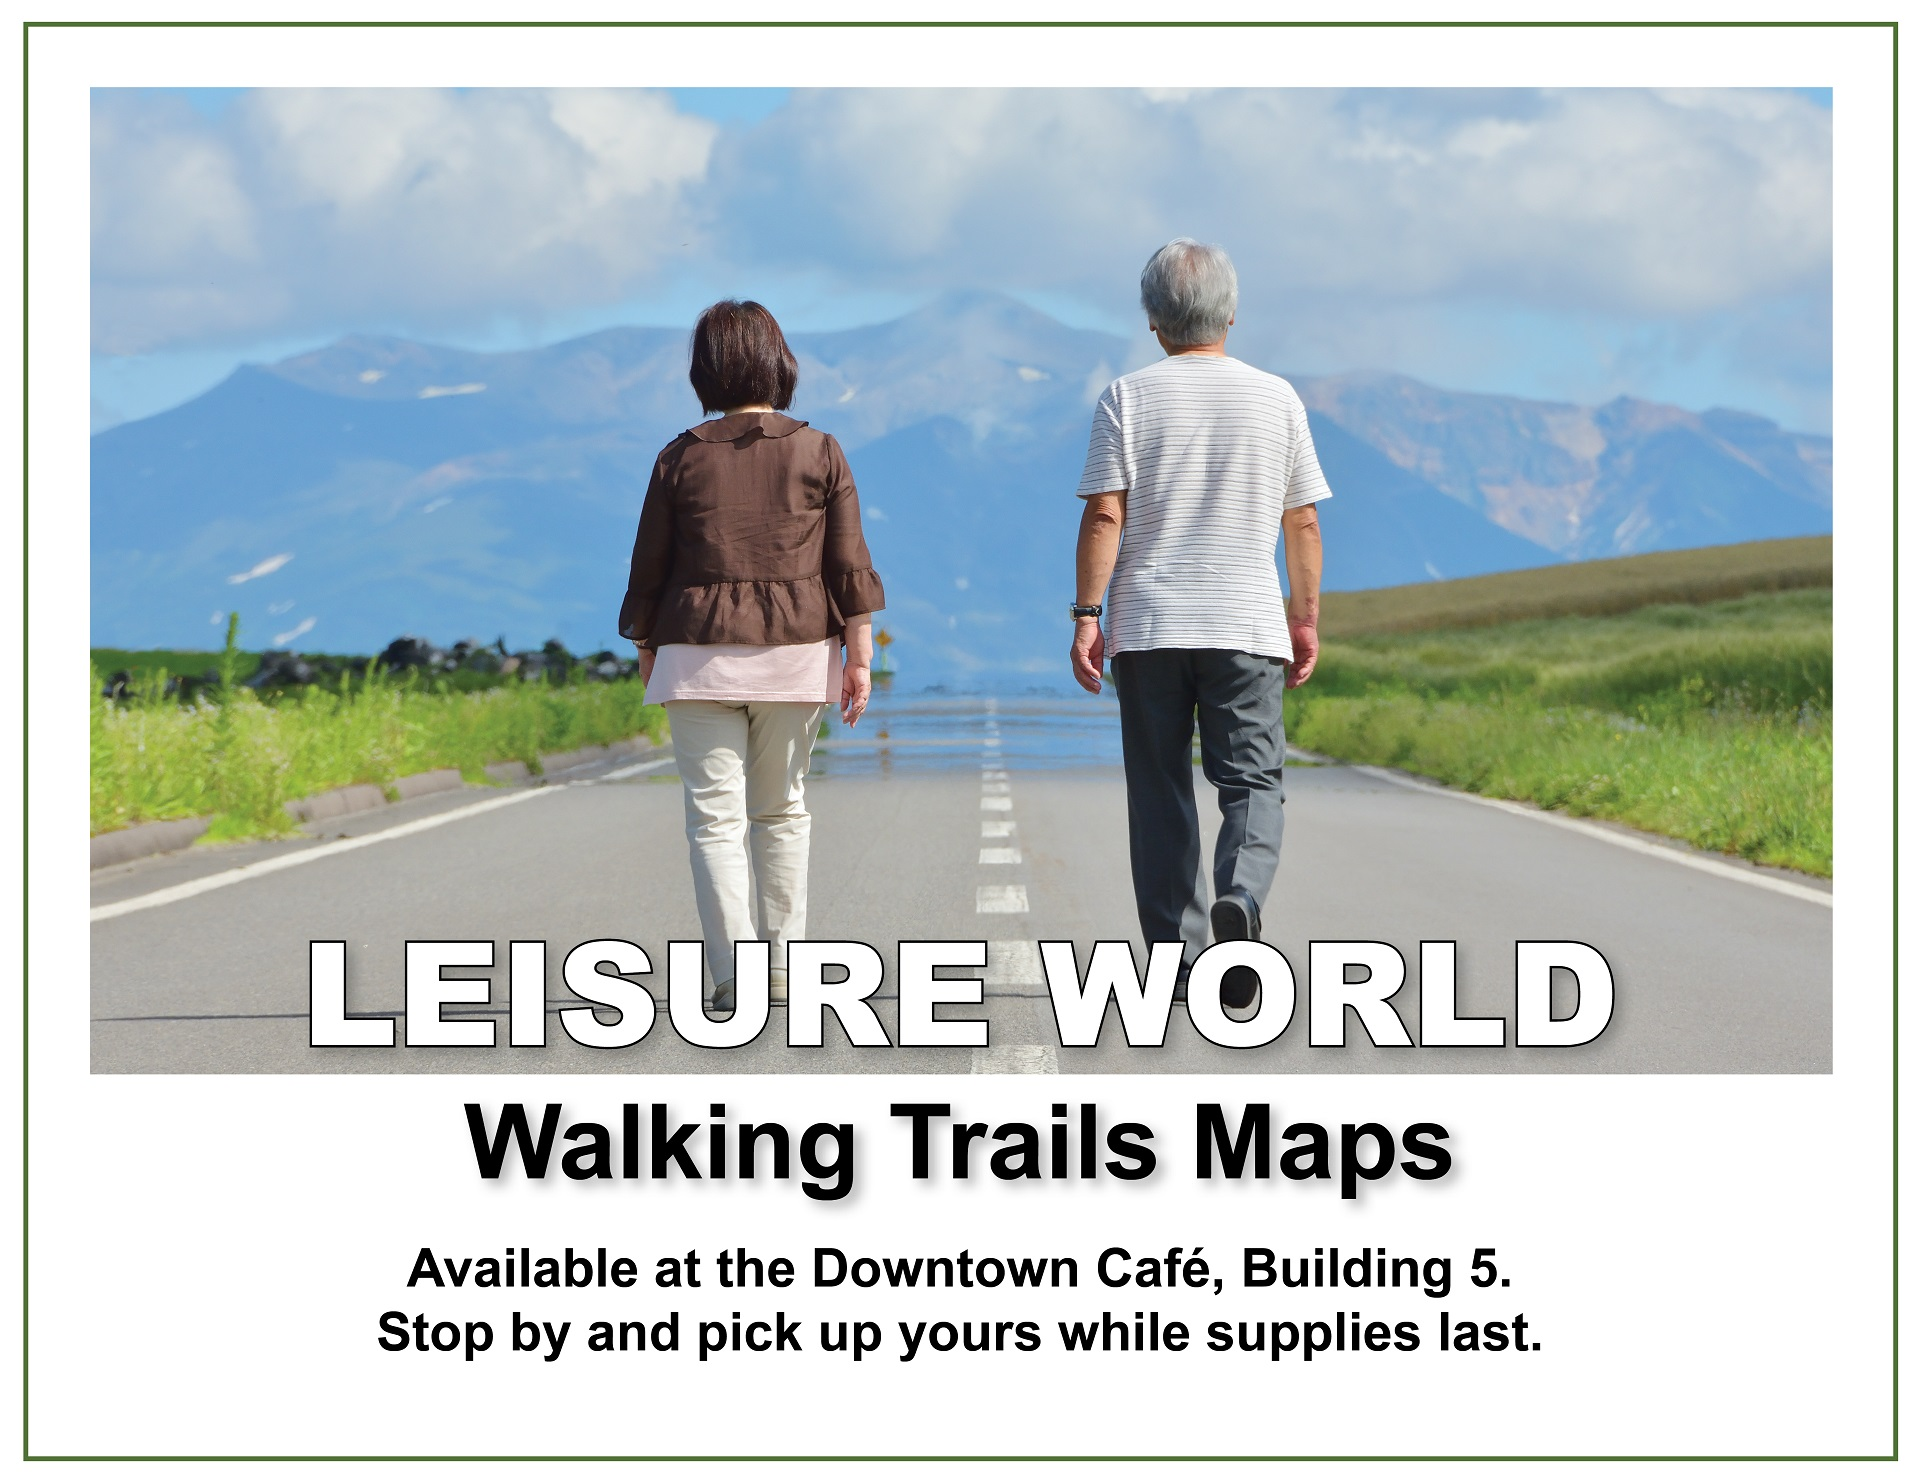 Website walking trails maps